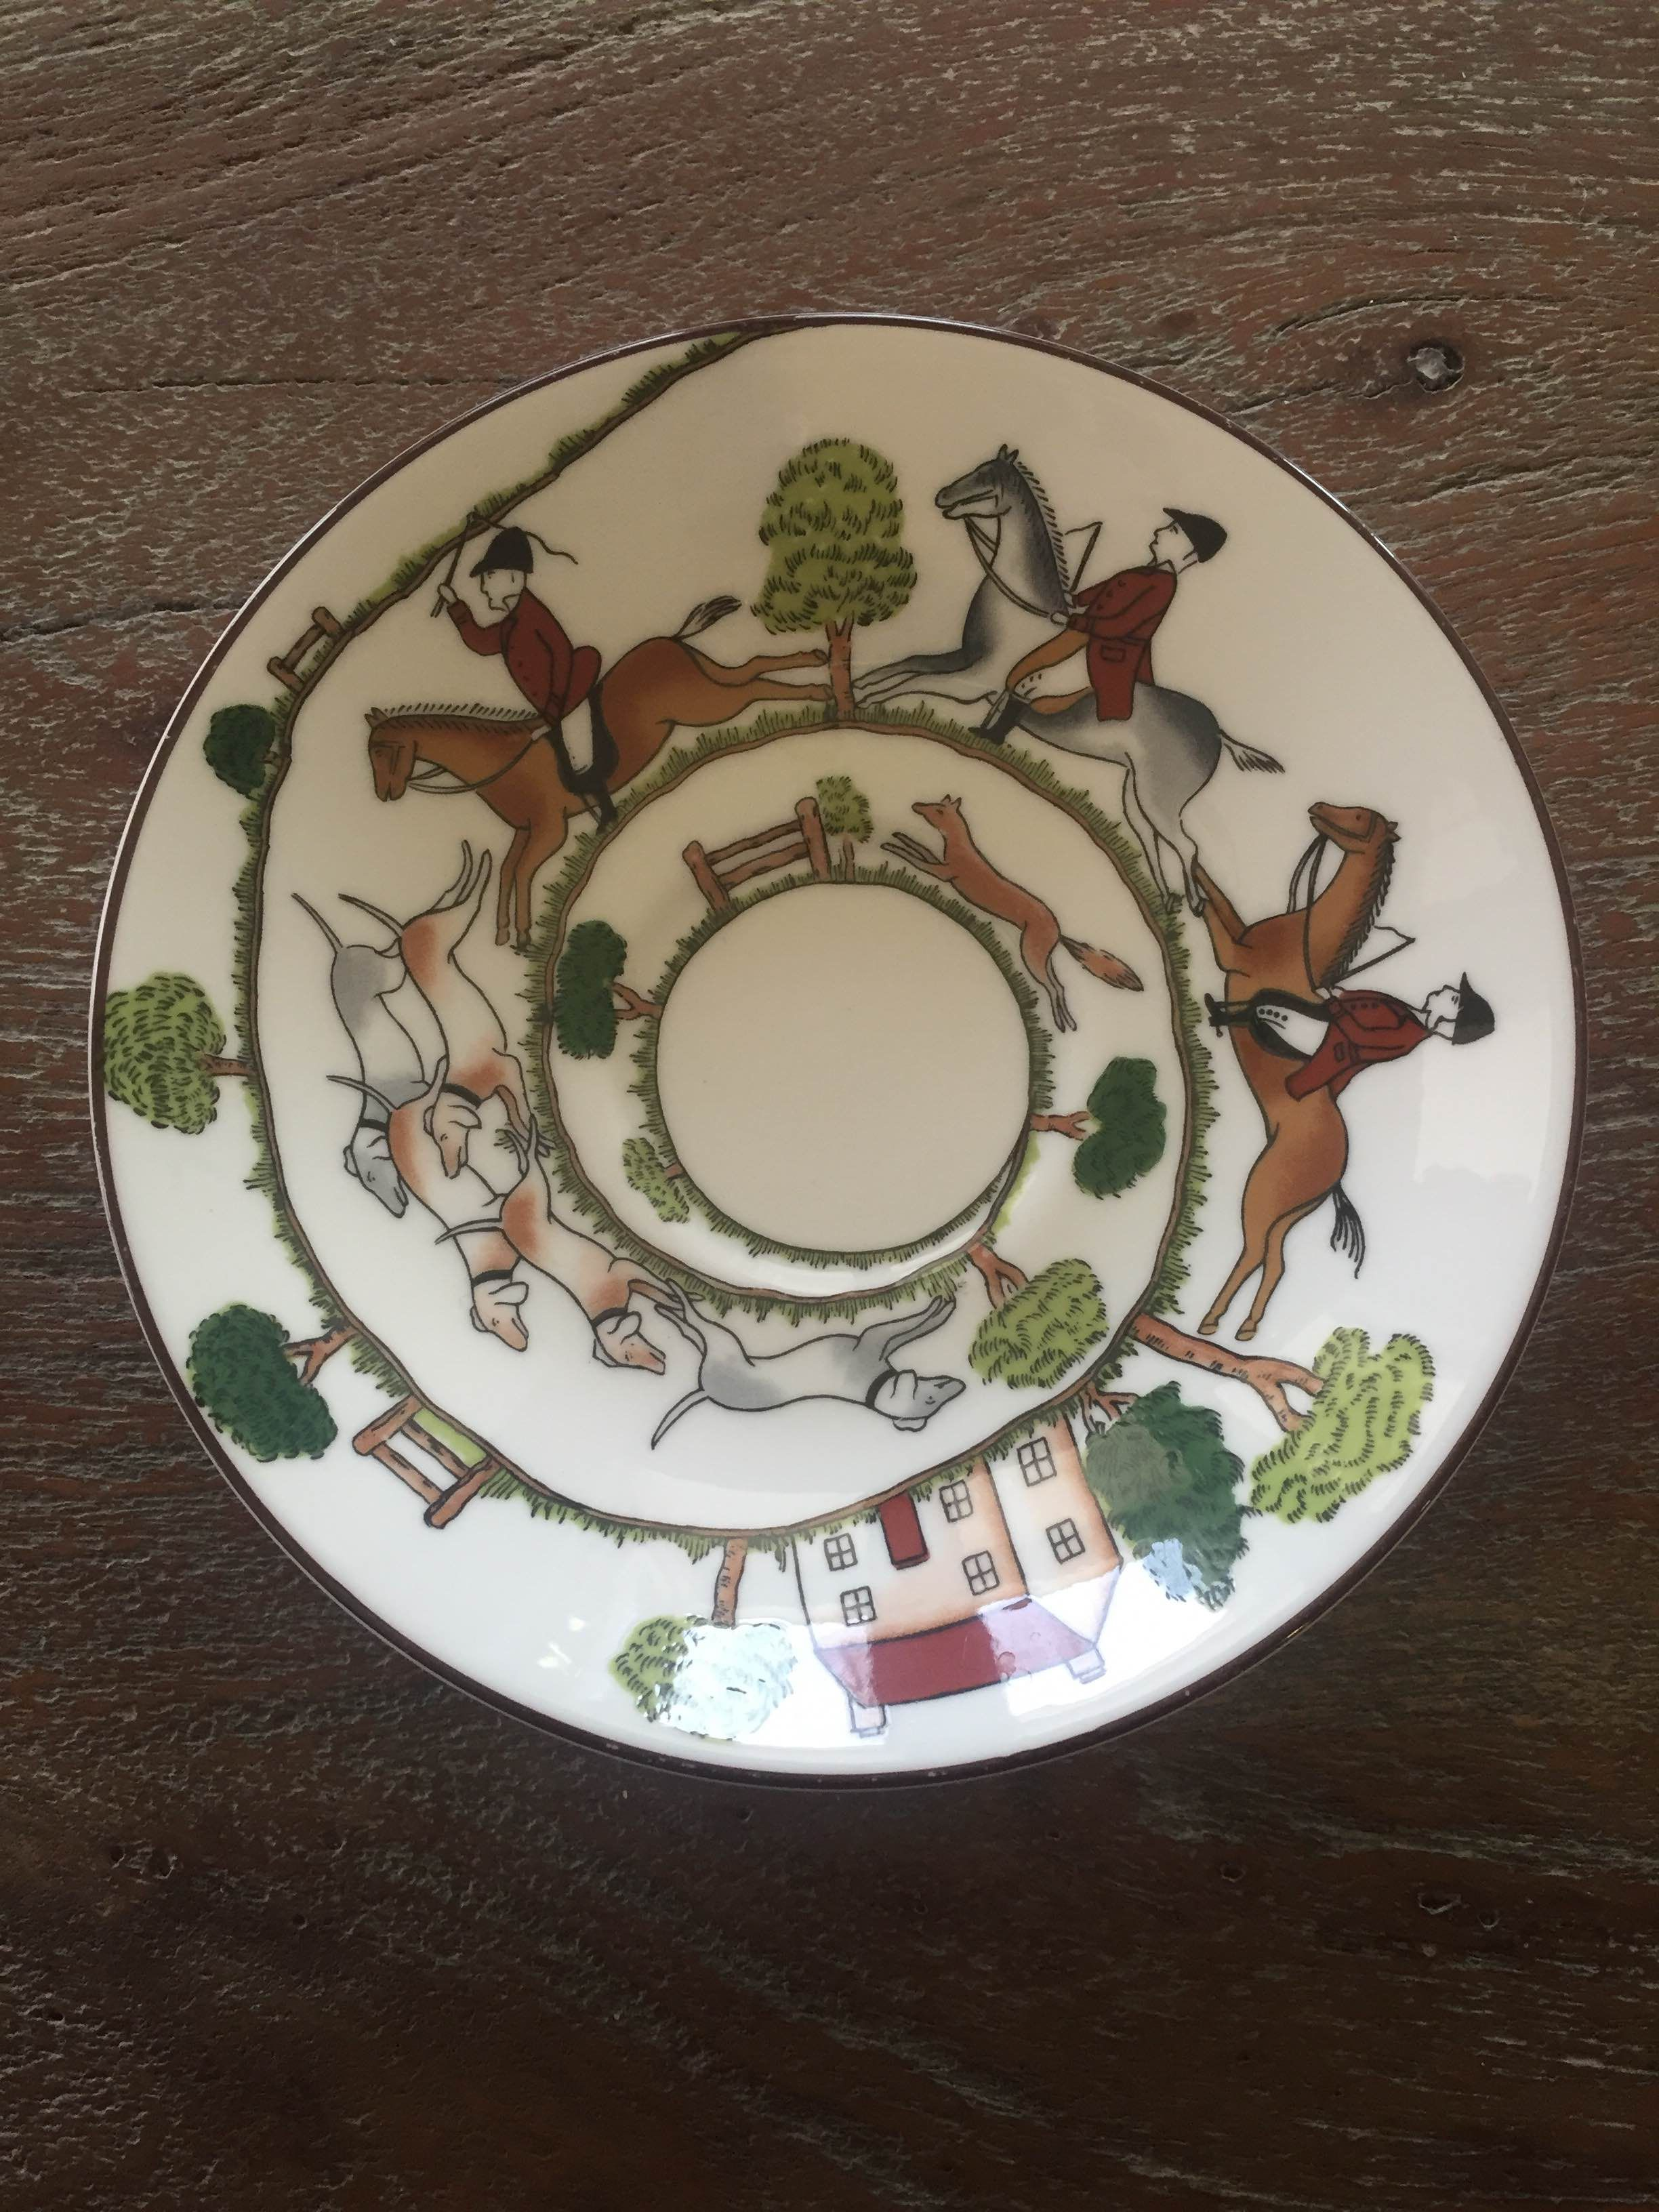 Crown Staffordshire saucer - Hunting Scene pattern. This is part of a 10-piece tea set sold in our vintage shop. These dishes were featured on One King's Lane recently and is a perfect addition for your French Country or English decor. Made in England. Antique. Vintage.  https://www.etsy.com/listing/263063391/crown-staffordshire-tea-set-10-piece?ref=shop_home_active_10 Gidget's Vintage Finds